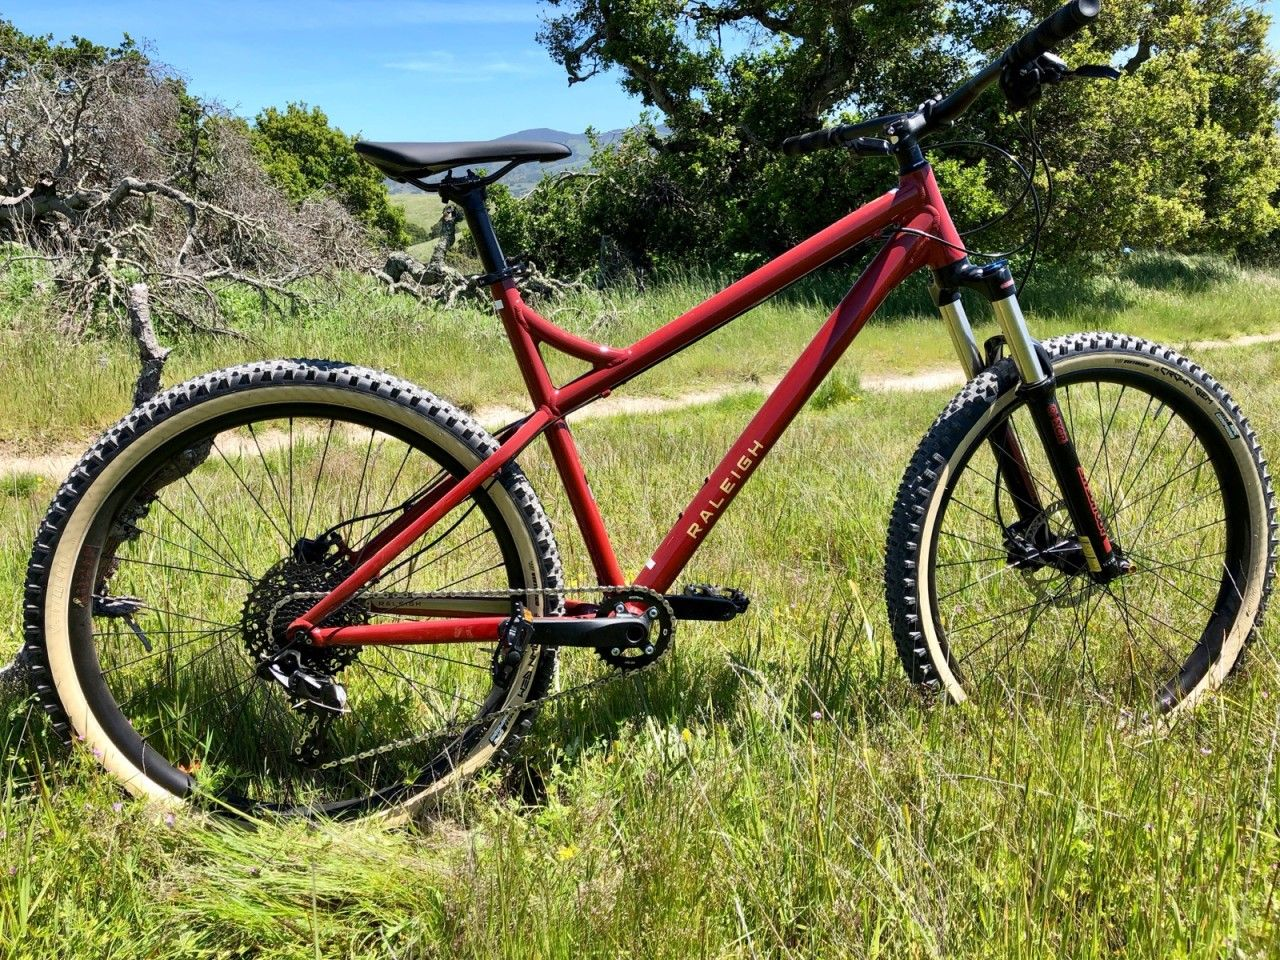 The Raleigh Tokul 3 Looks Great Packs A Nice Spec For Under 1 000 Singletracks Mountain Bike News Mountain Biking Gear Bike News Mountian Bike